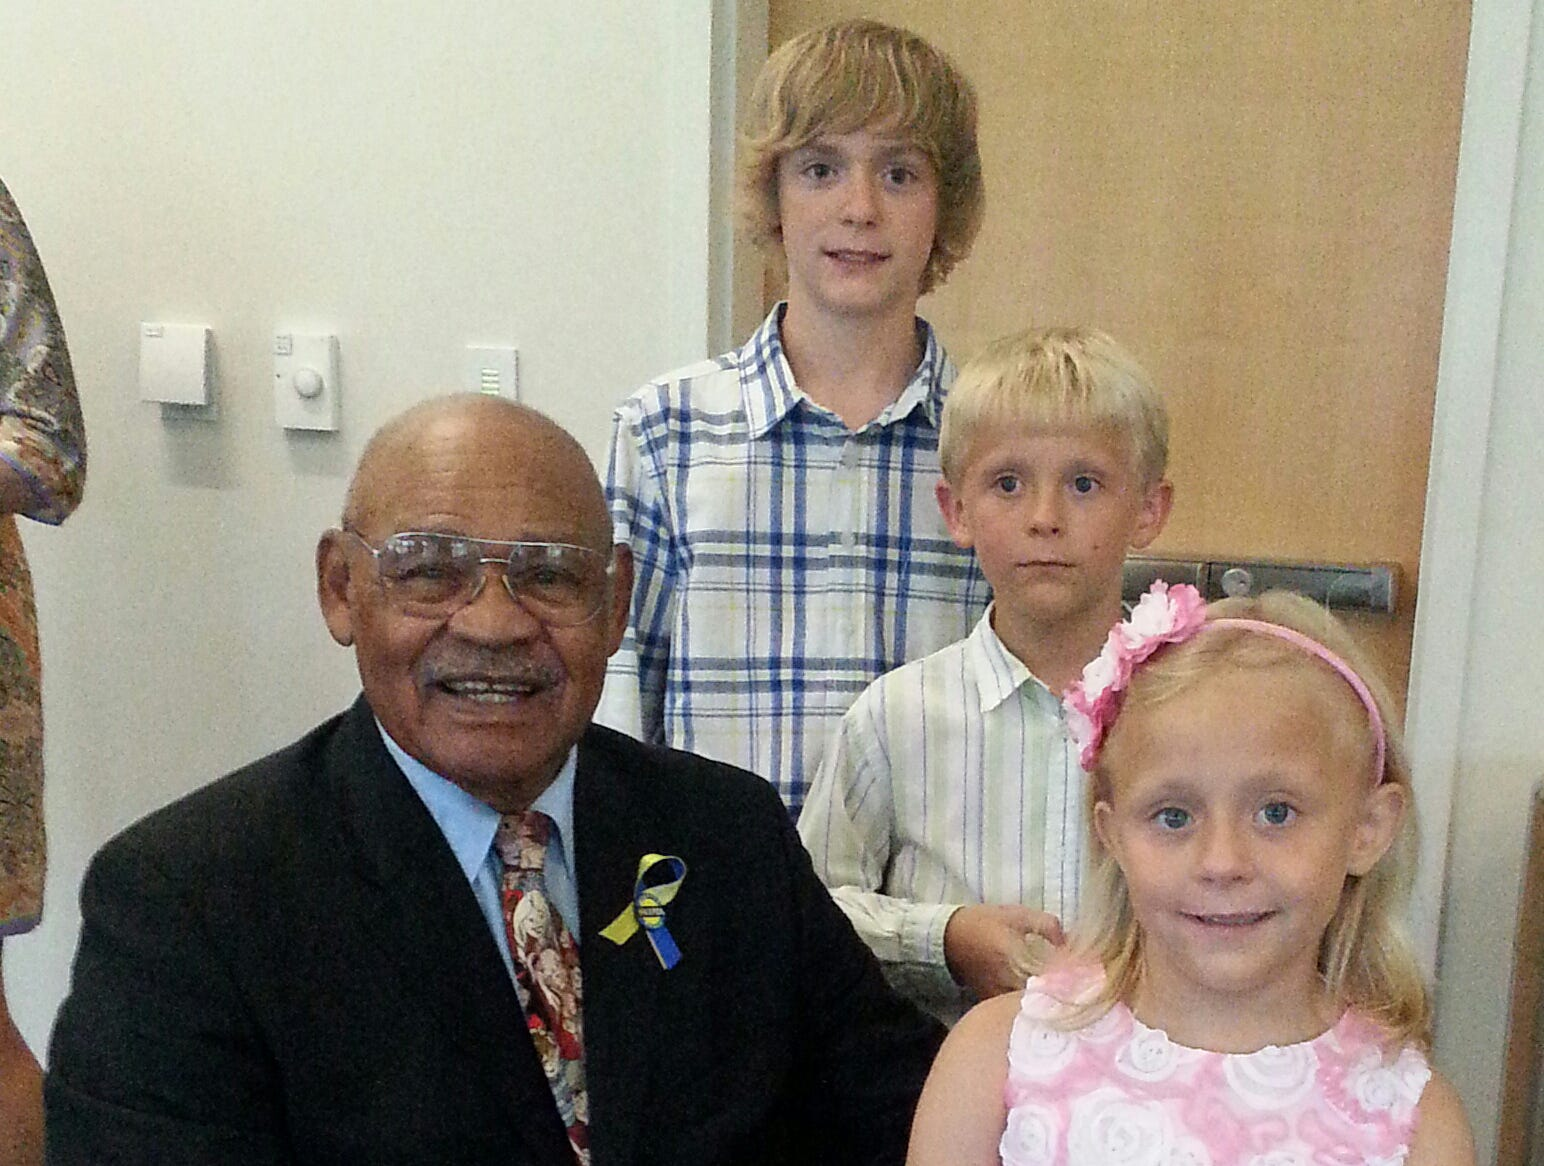 Provided by Jim and Suzanne Seid George Taliaferro sits beside Ethan Seiders, 13, and 8-year-old twins Owen and Lauren Seiders.  Taliaferro is chairman emeritus of the local Children's Organ Transplant Association. George Taliaferro with Ethan, 13, Owen, 8, and Lauren Seiders, also 8. (twins). Lauren has had multiple organ transplants. Taliaferro serves as chairman emeritus of the localChildren's Organ Transplant Association